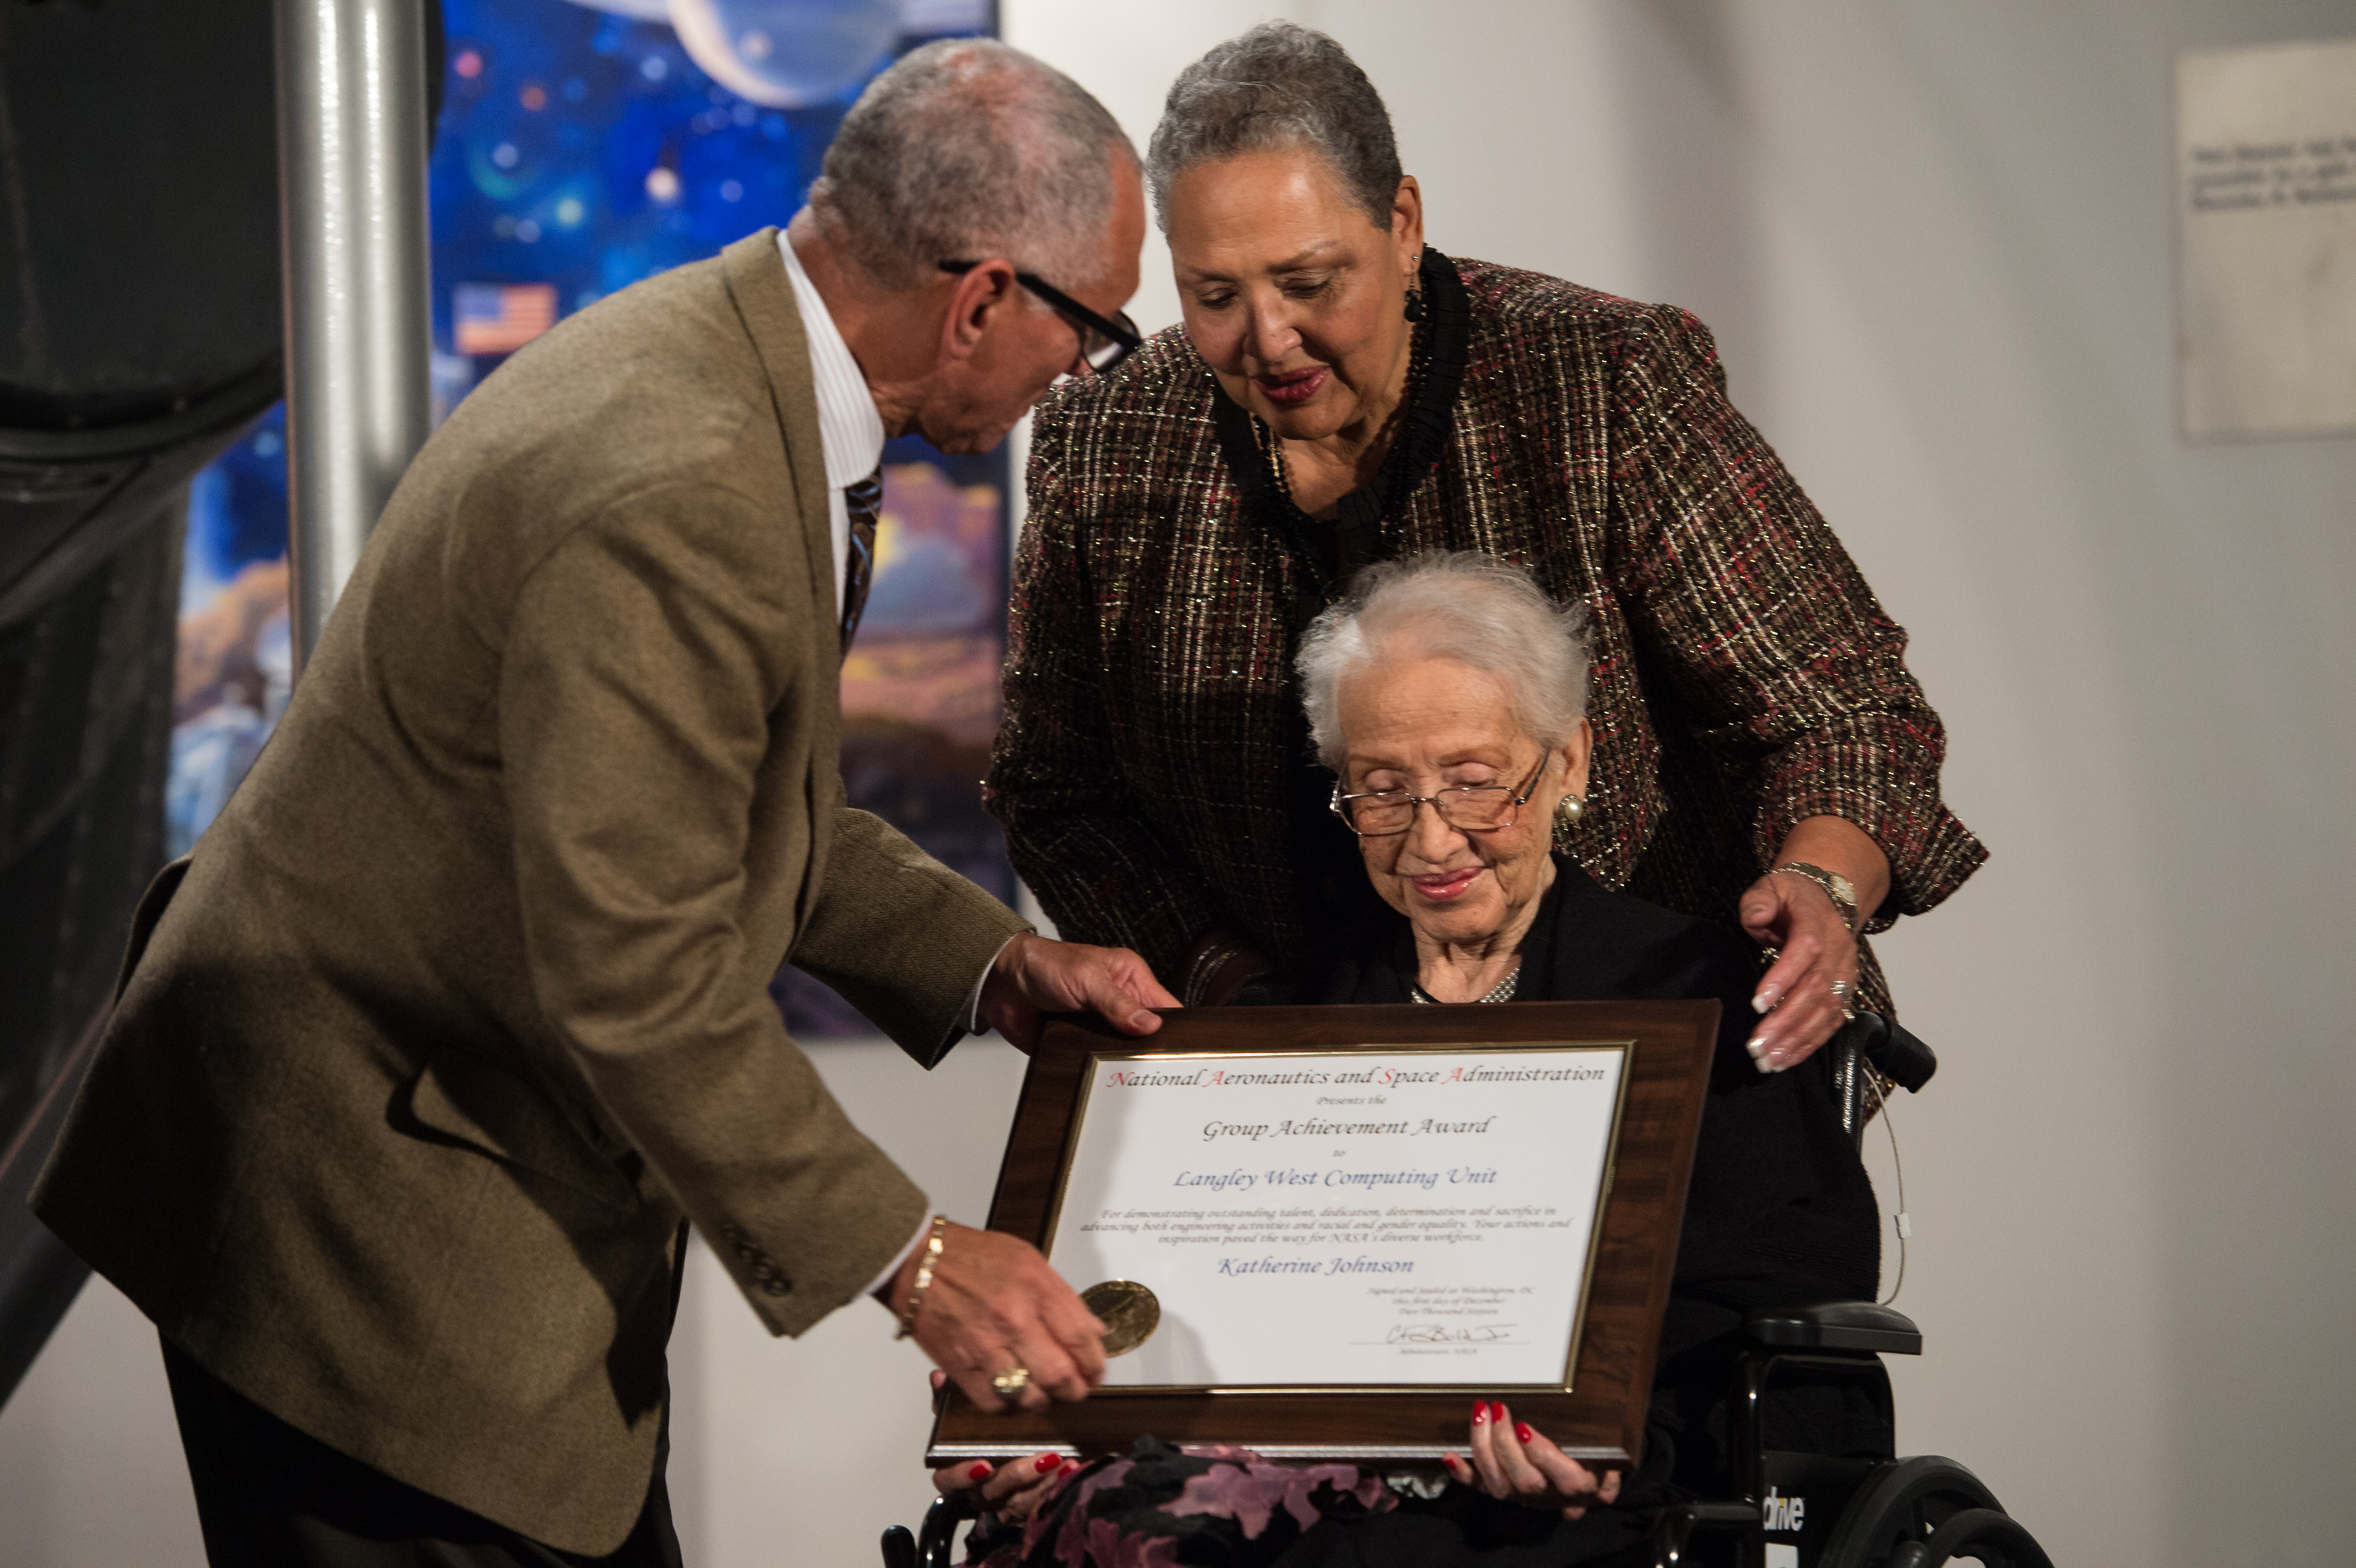 Gallery images and information annie keenan reduction - Nasa Administrator Bolden Gives Award Certificate To Katherine Johnson Back To Gallery